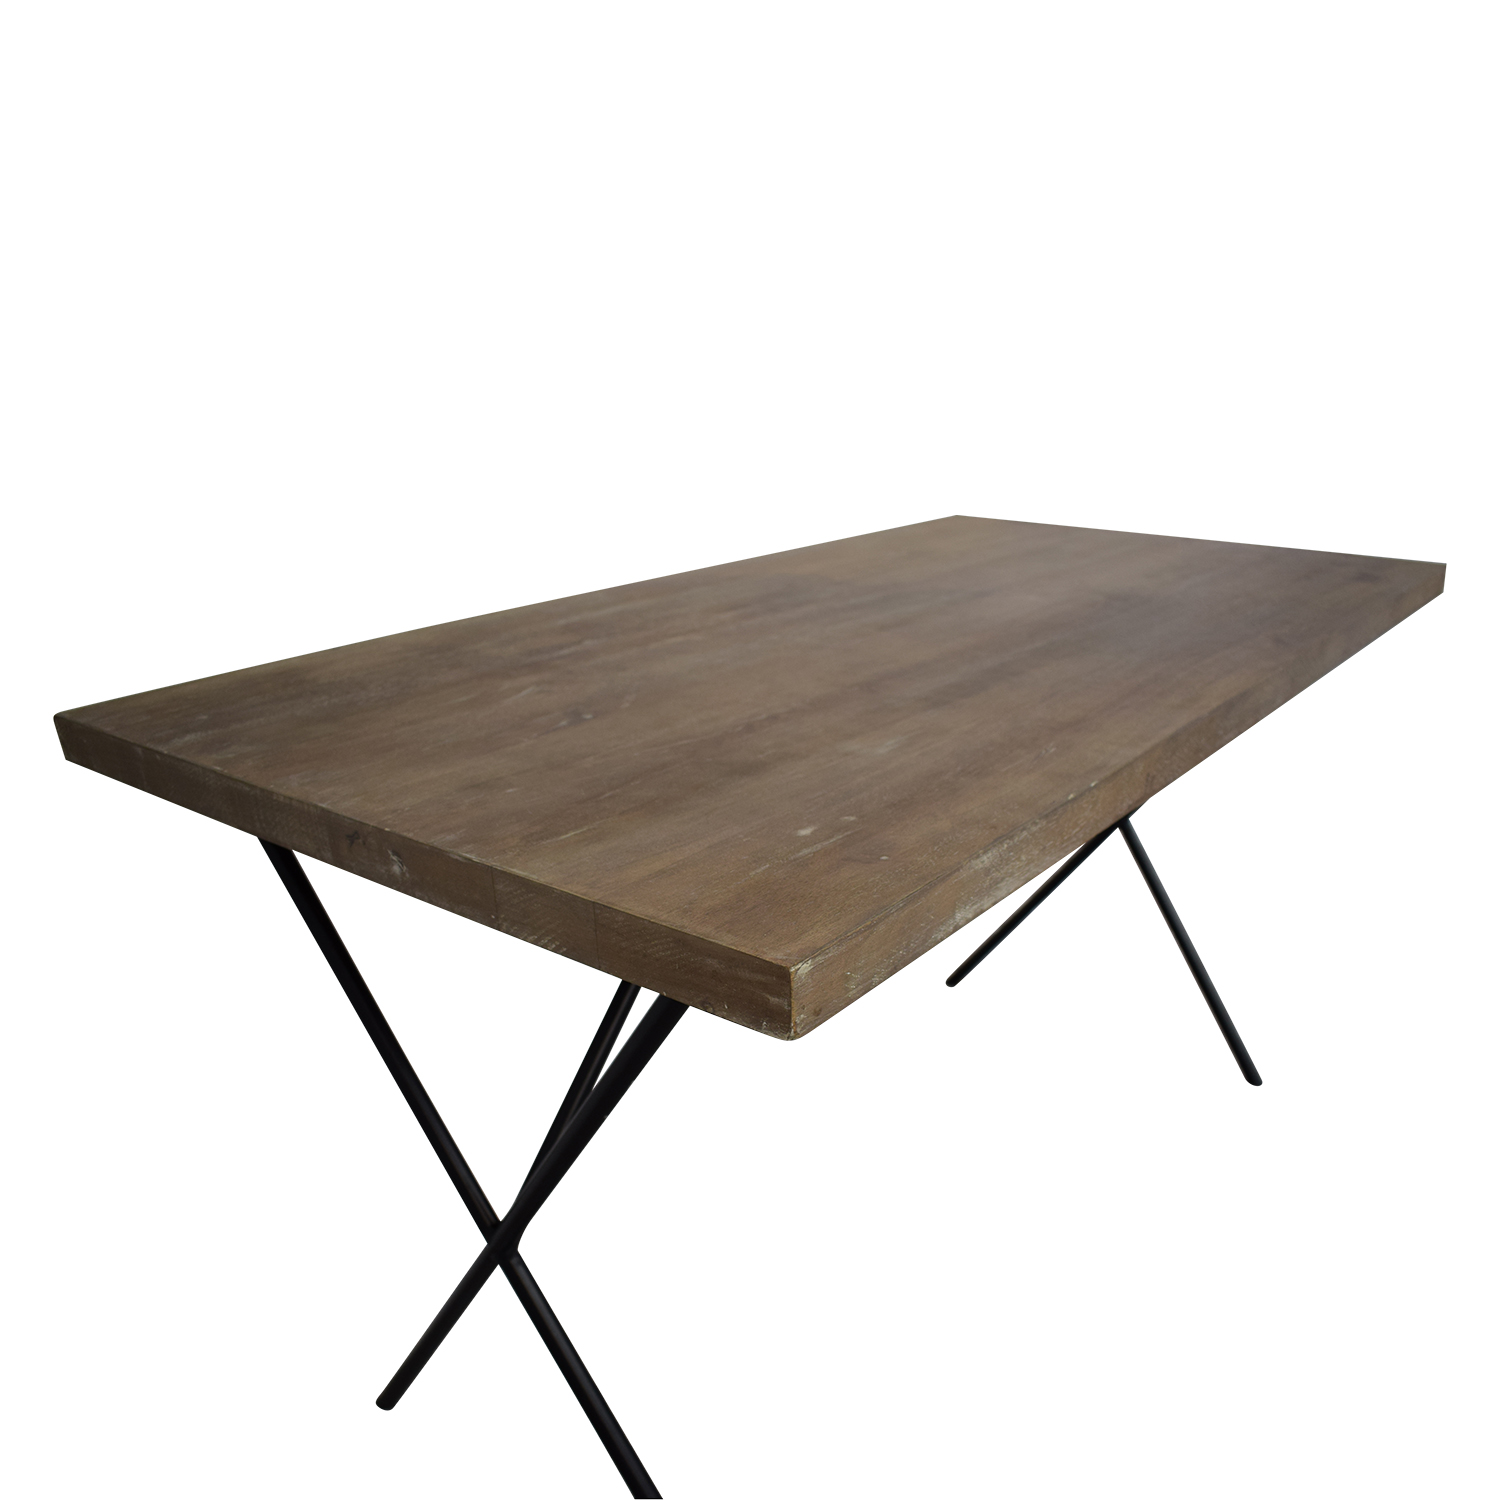 West Elm West Elm Truss Work Table for sale